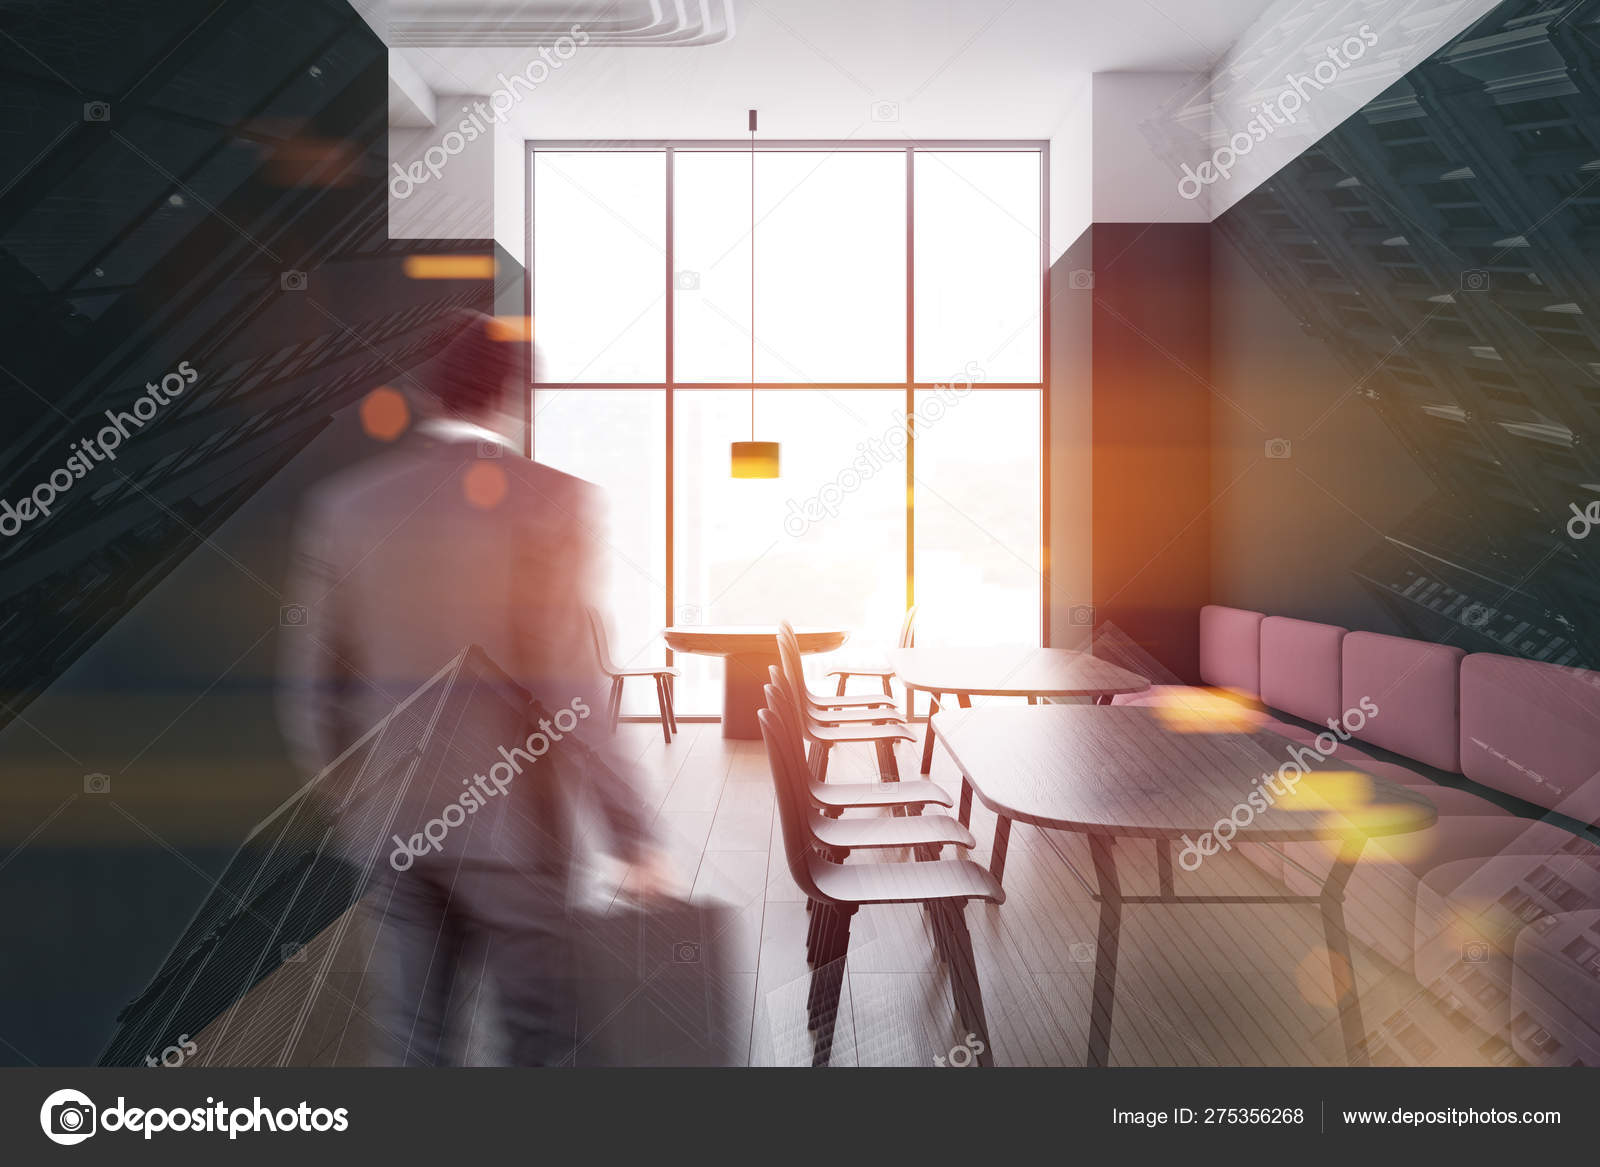 Man In Green And White Cafe With Sofas Stock Photo C Denisismagilov 275356268